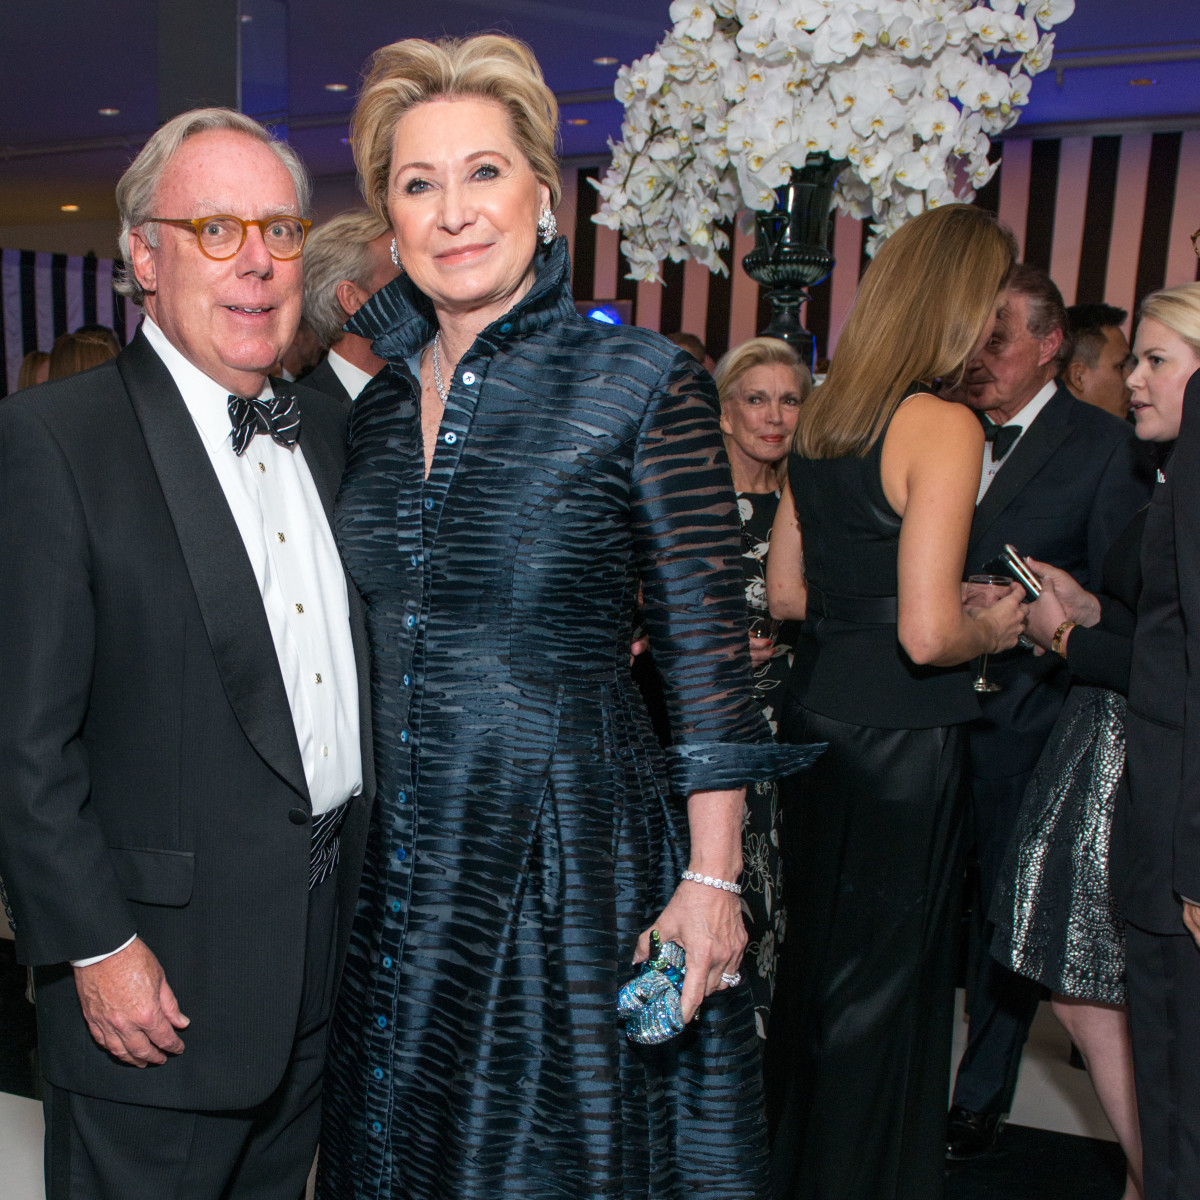 News, Shelby, Museum of Fine Arts gala, Oct. 2015, Mike Linn, Carol Linn